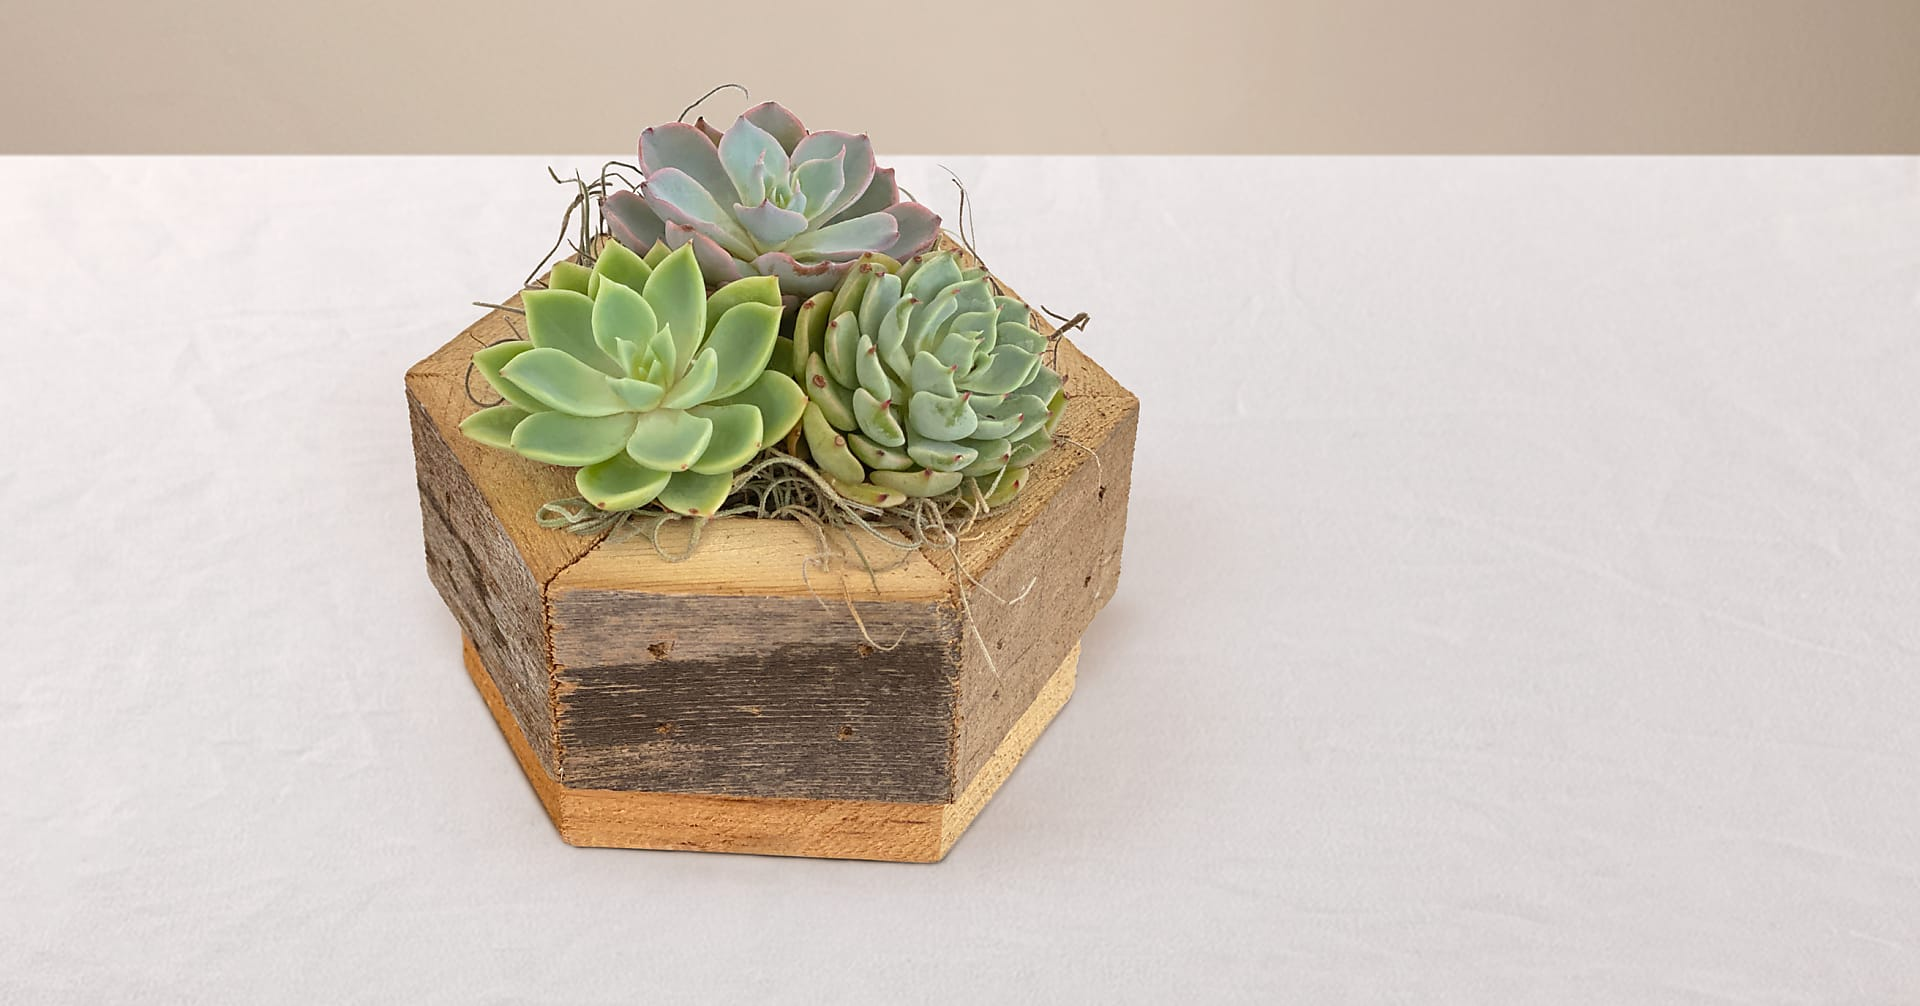 Zen Succulent Hexagon Garden - Image 1 Of 2